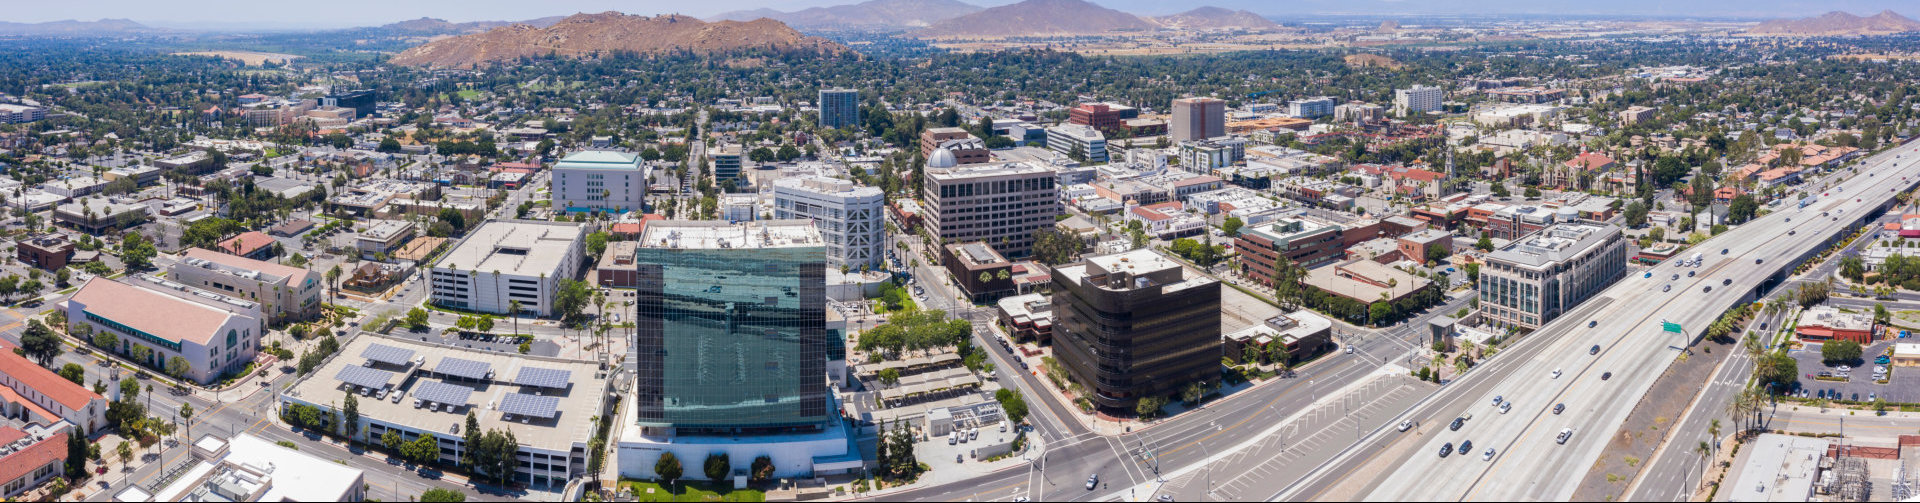 panoramic-aerial-day-time-view-downtown